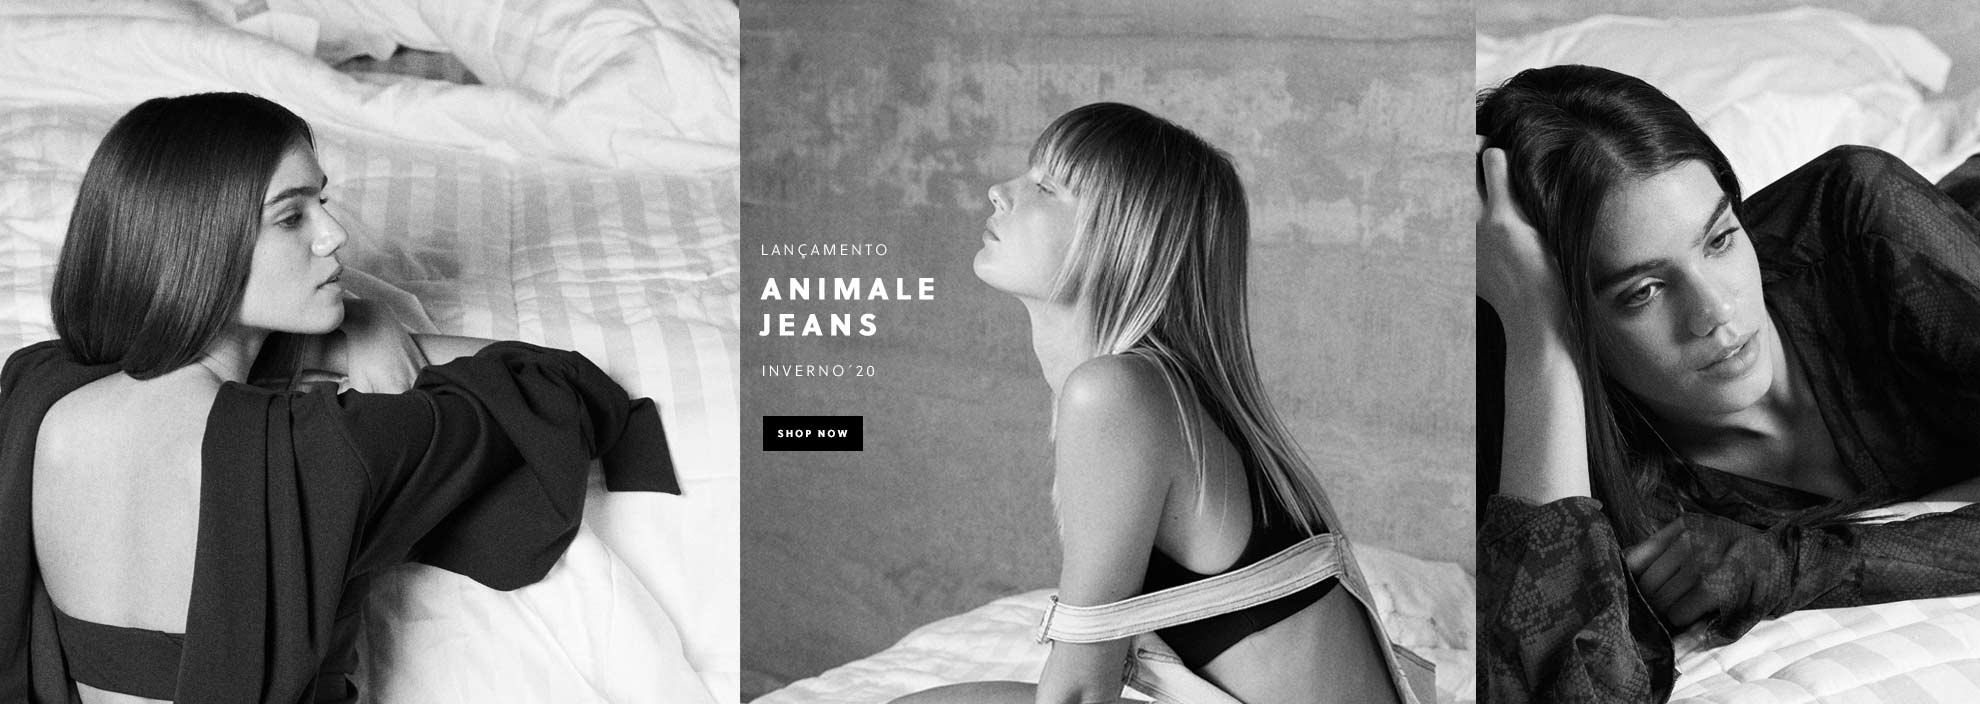 Animale Jeans